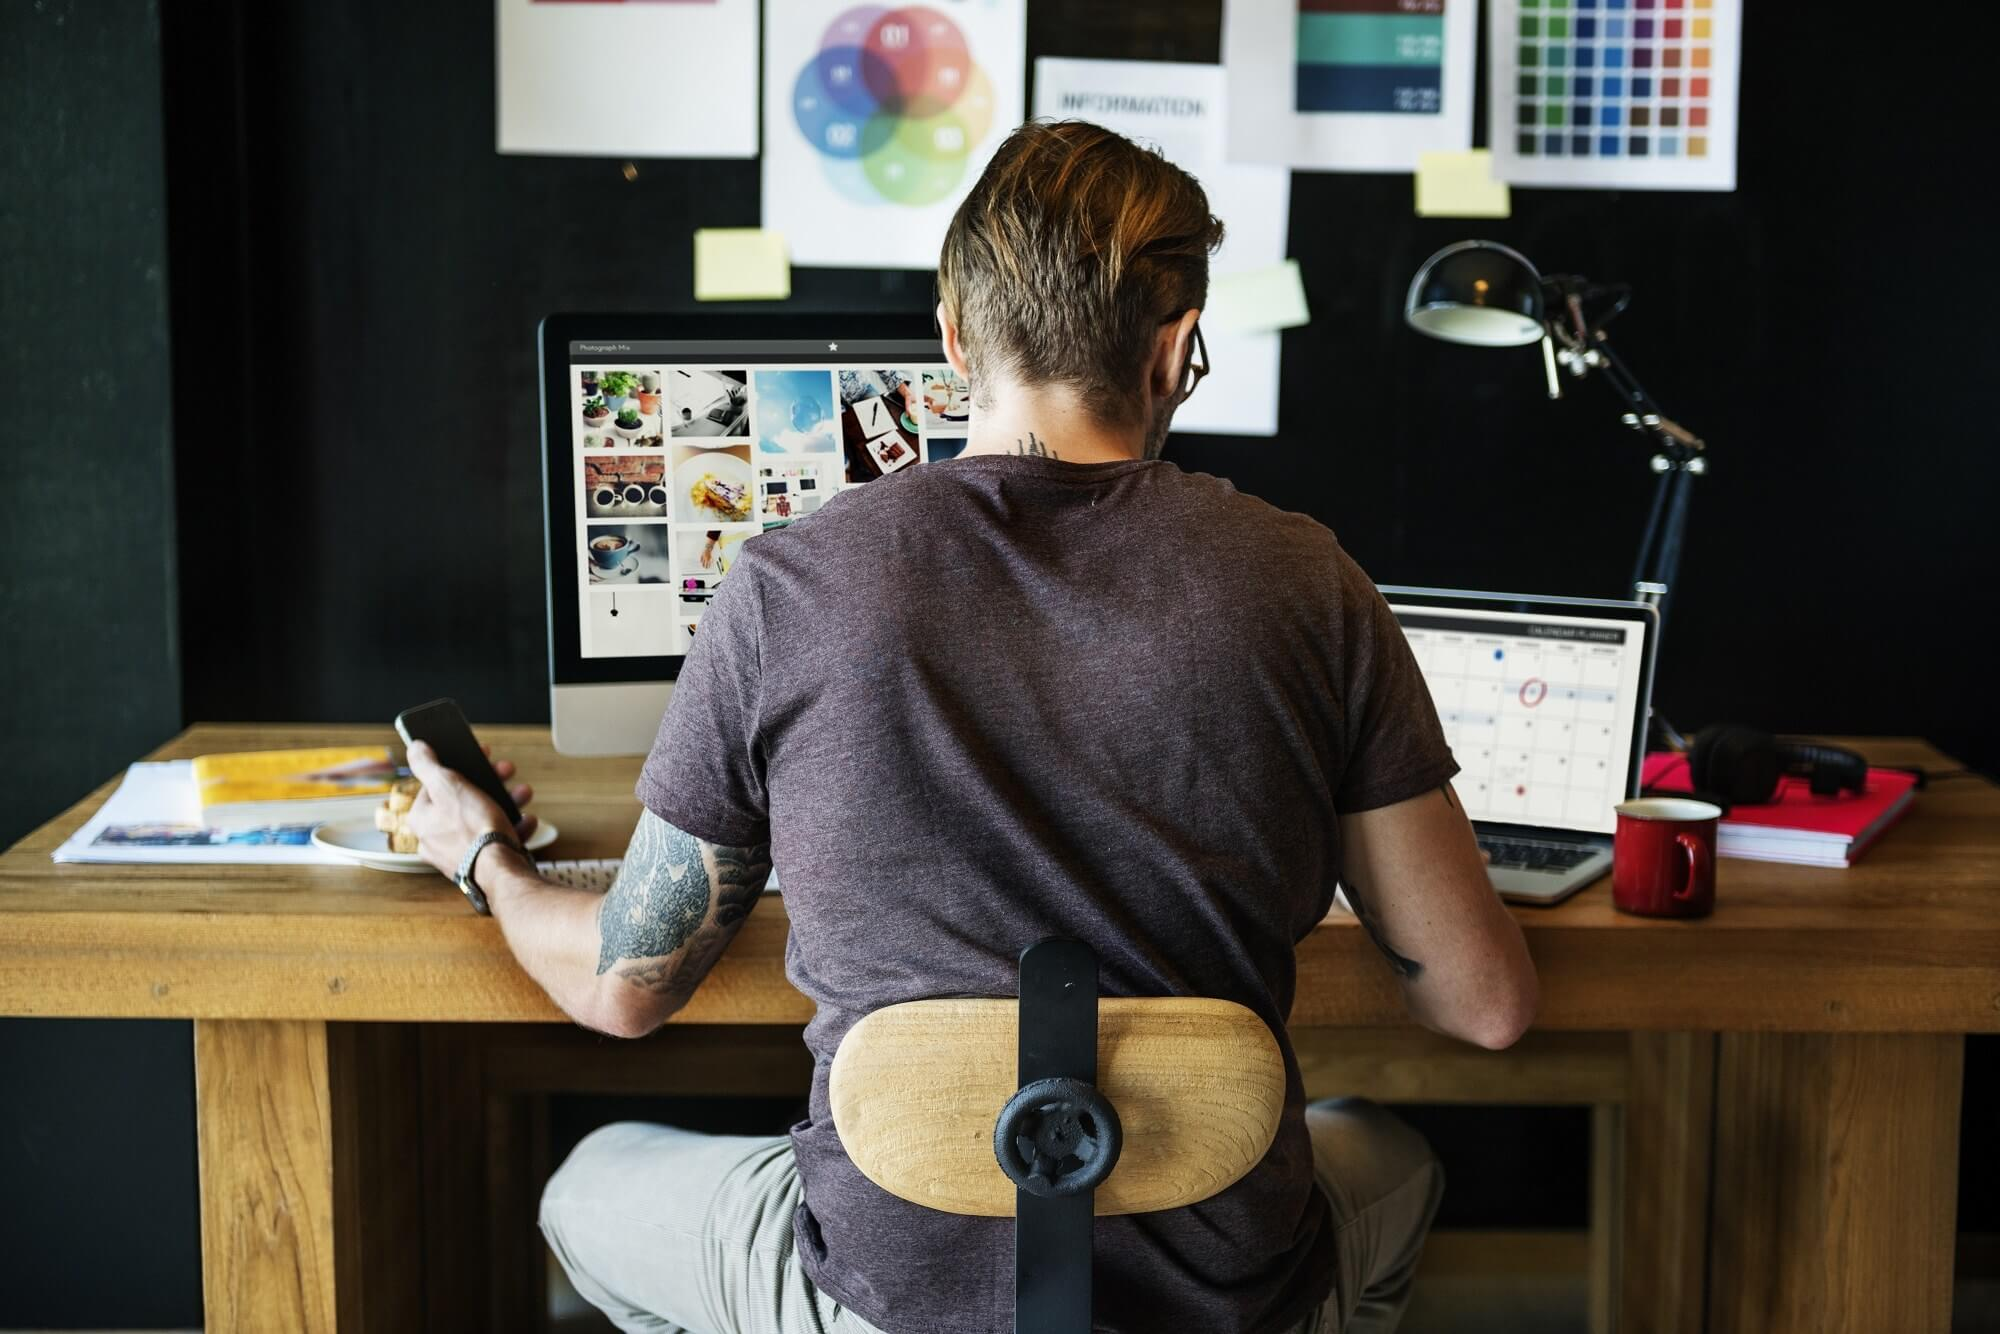 PC shipments soar as more people work from home